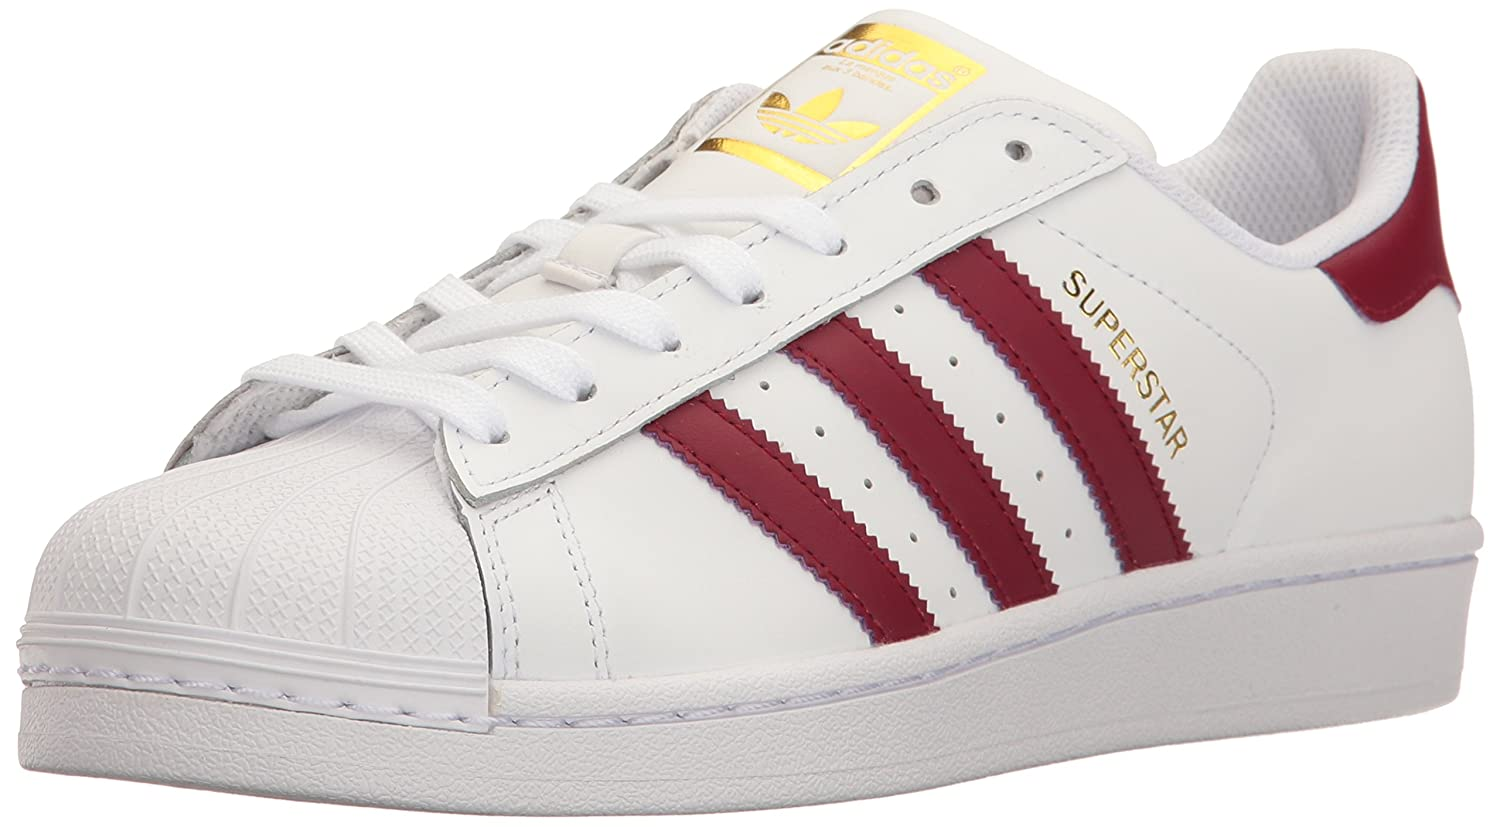 adidas Women's Originals Superstar B01HNF8HXG 8 B(M) US|White/Cardinal/Metallic/Gold